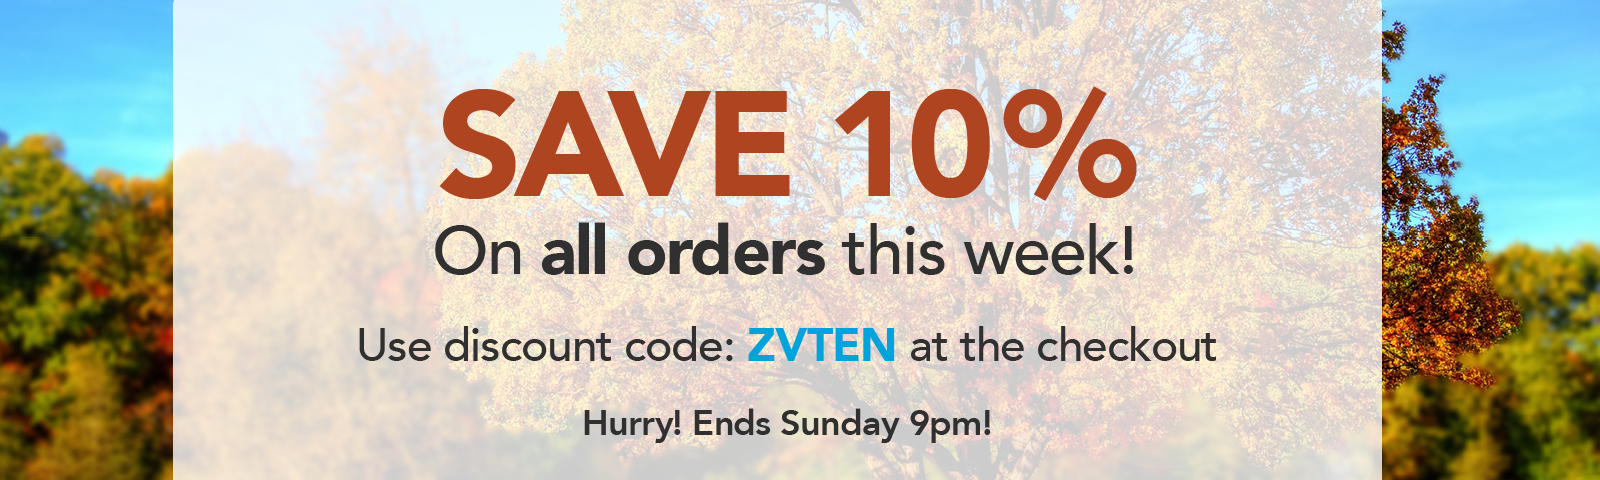 Save 10% This Week